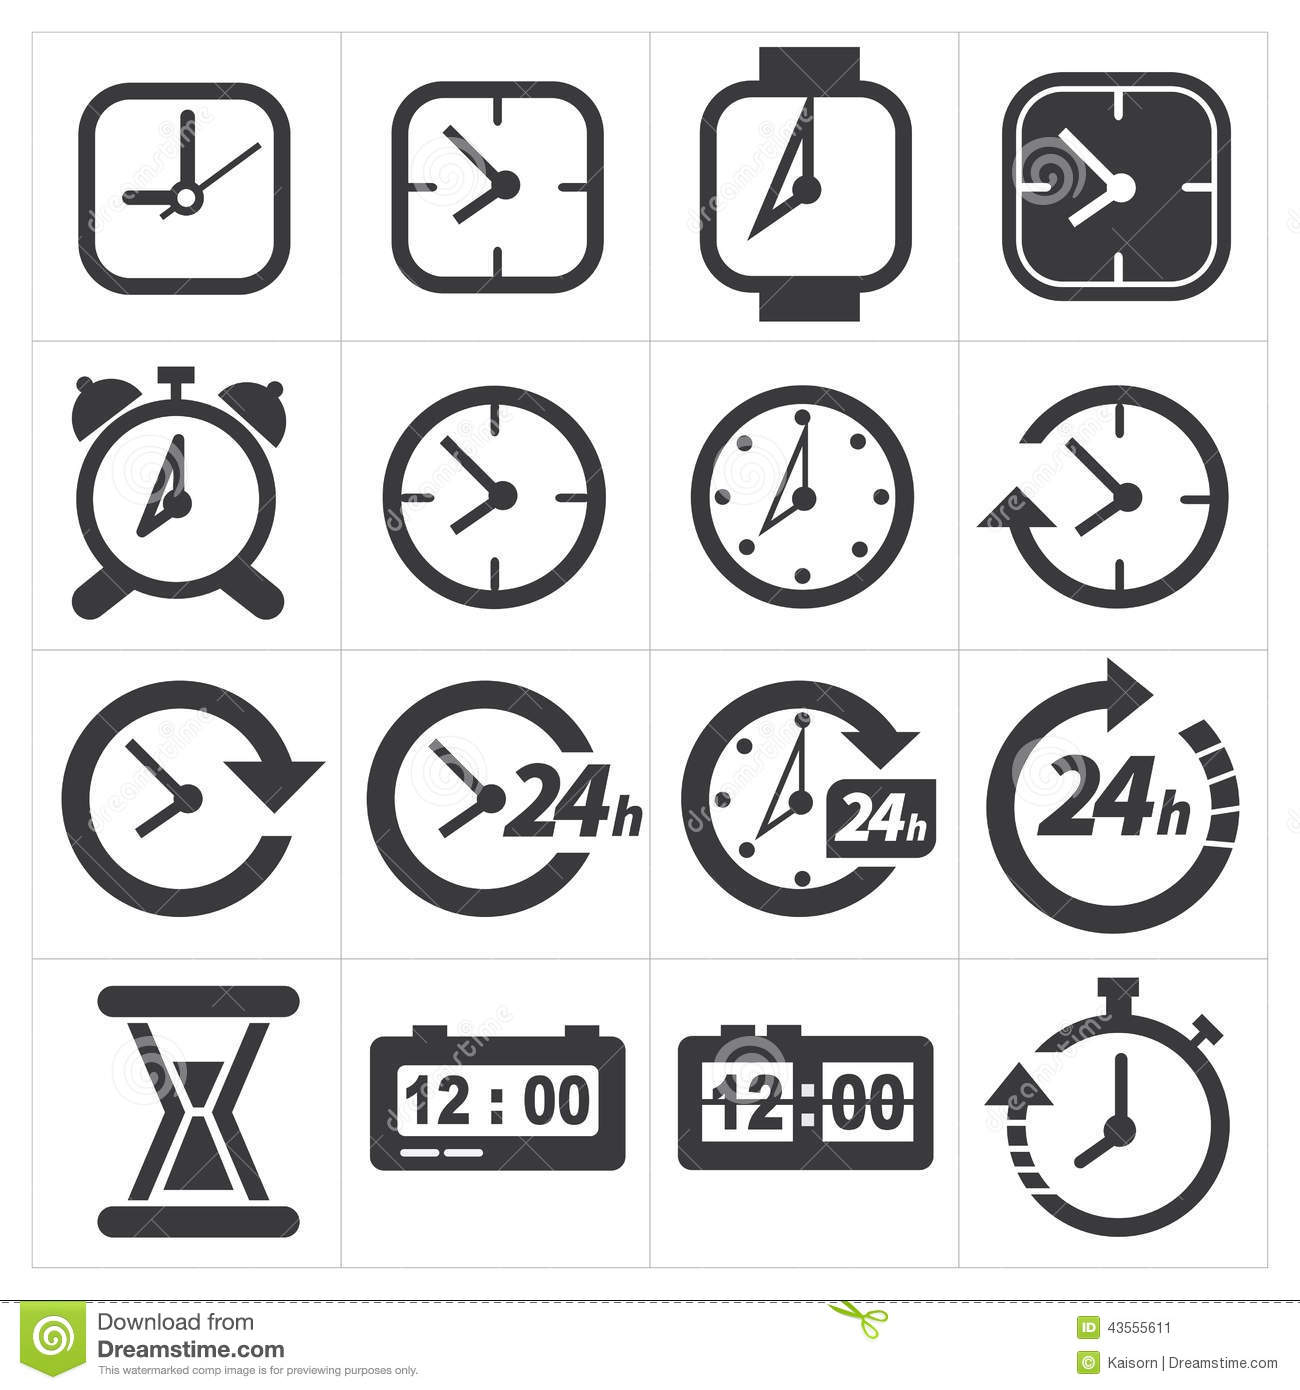 score clock how to set time of day